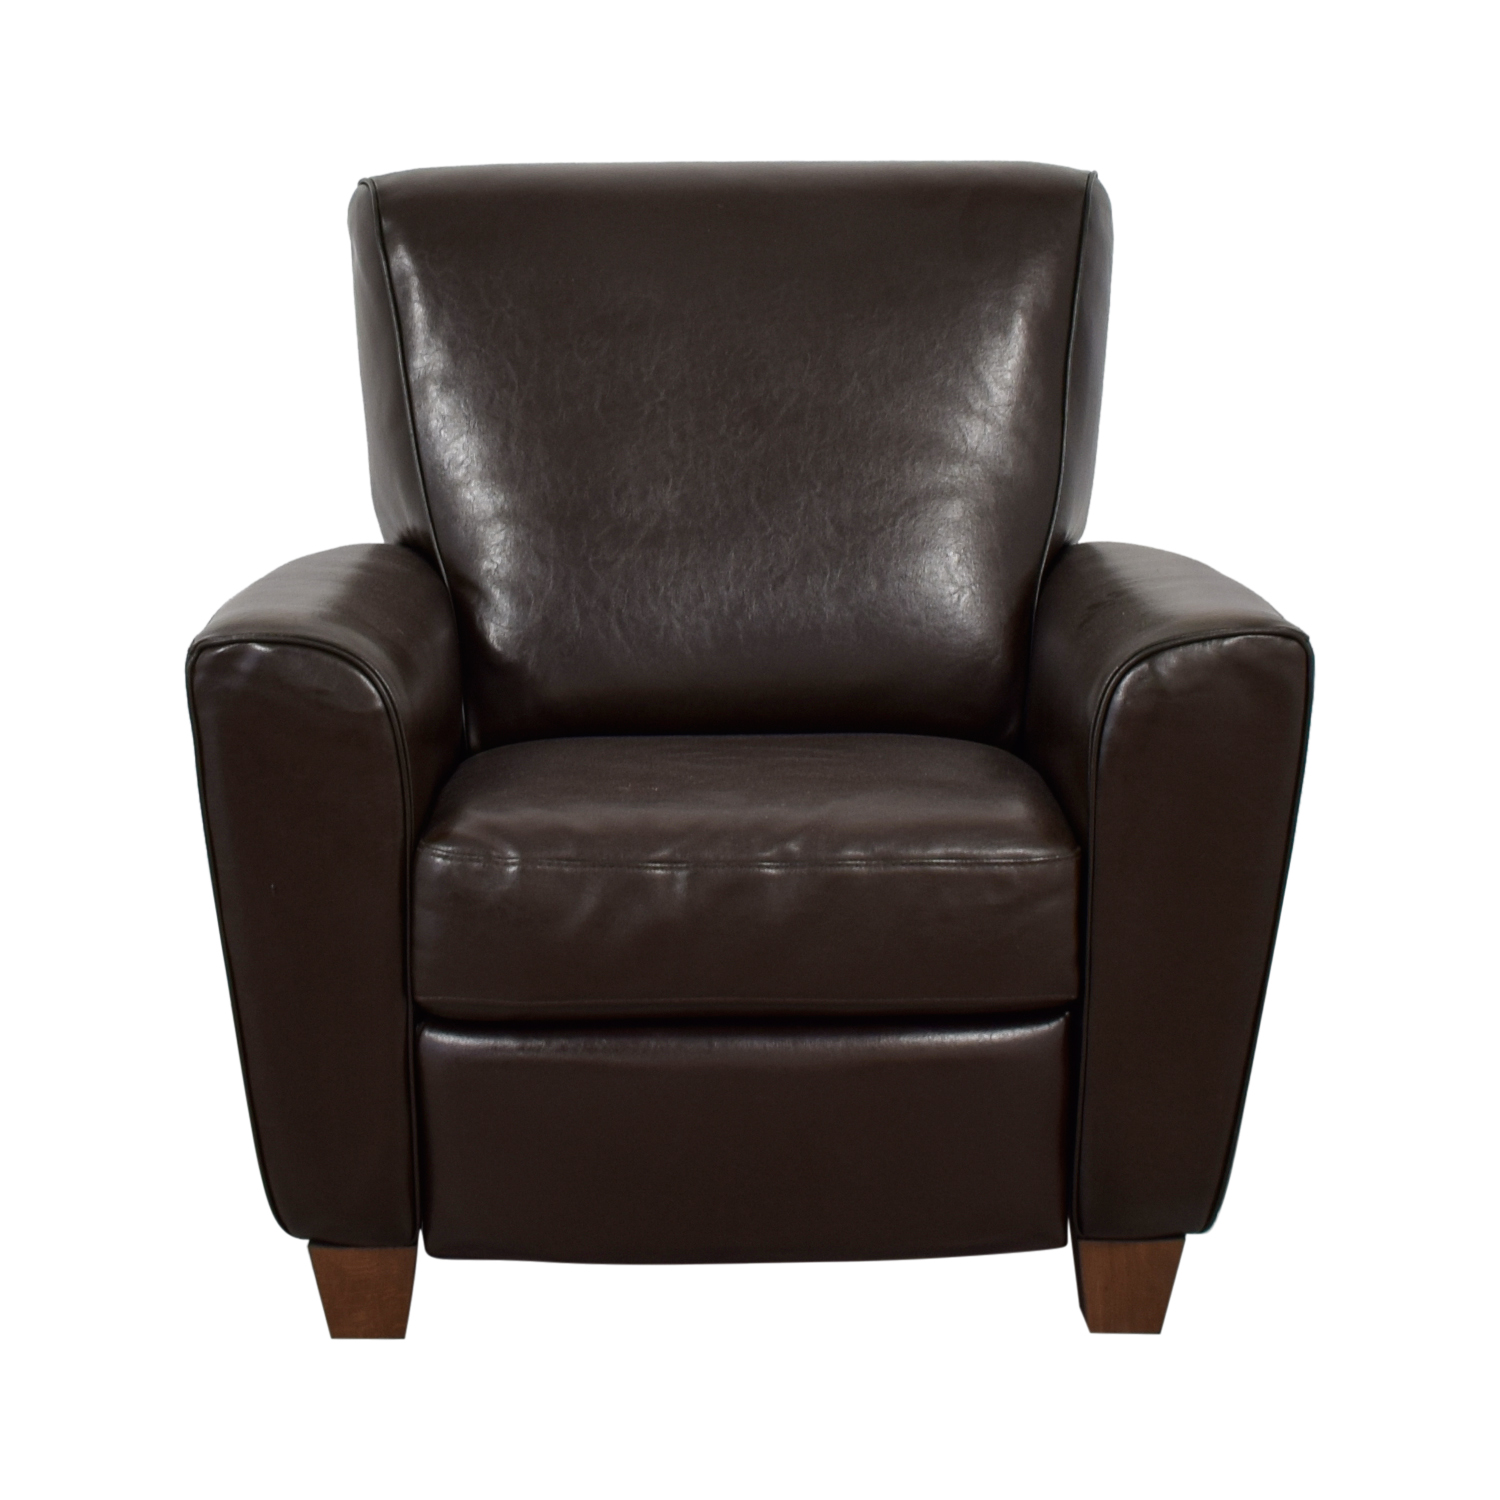 Brown Leather Chairs 79 Off Natuzzi Natuzzi Brown Leather Recliner Chairs